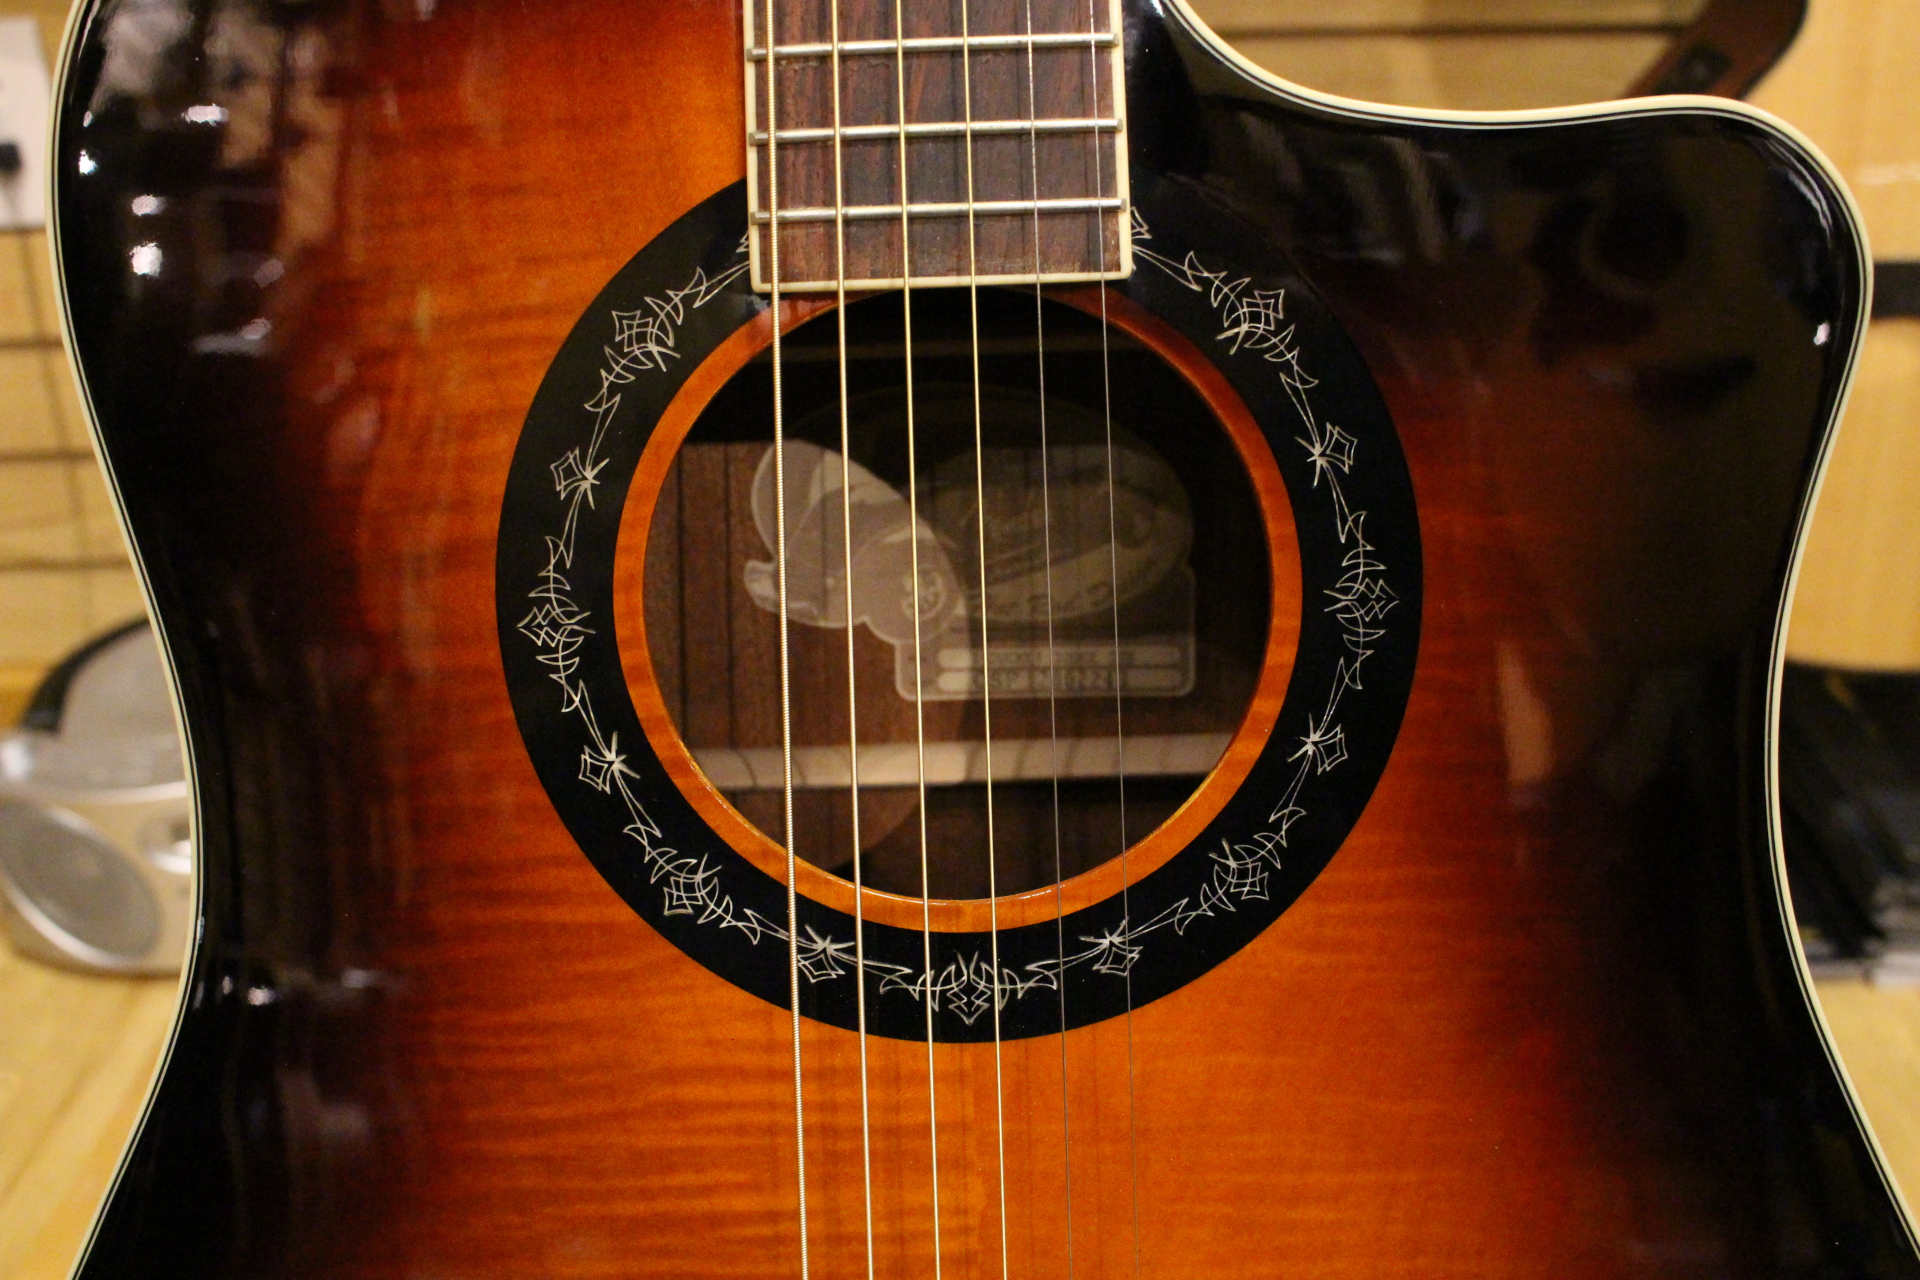 Unique Sound Hole Design!